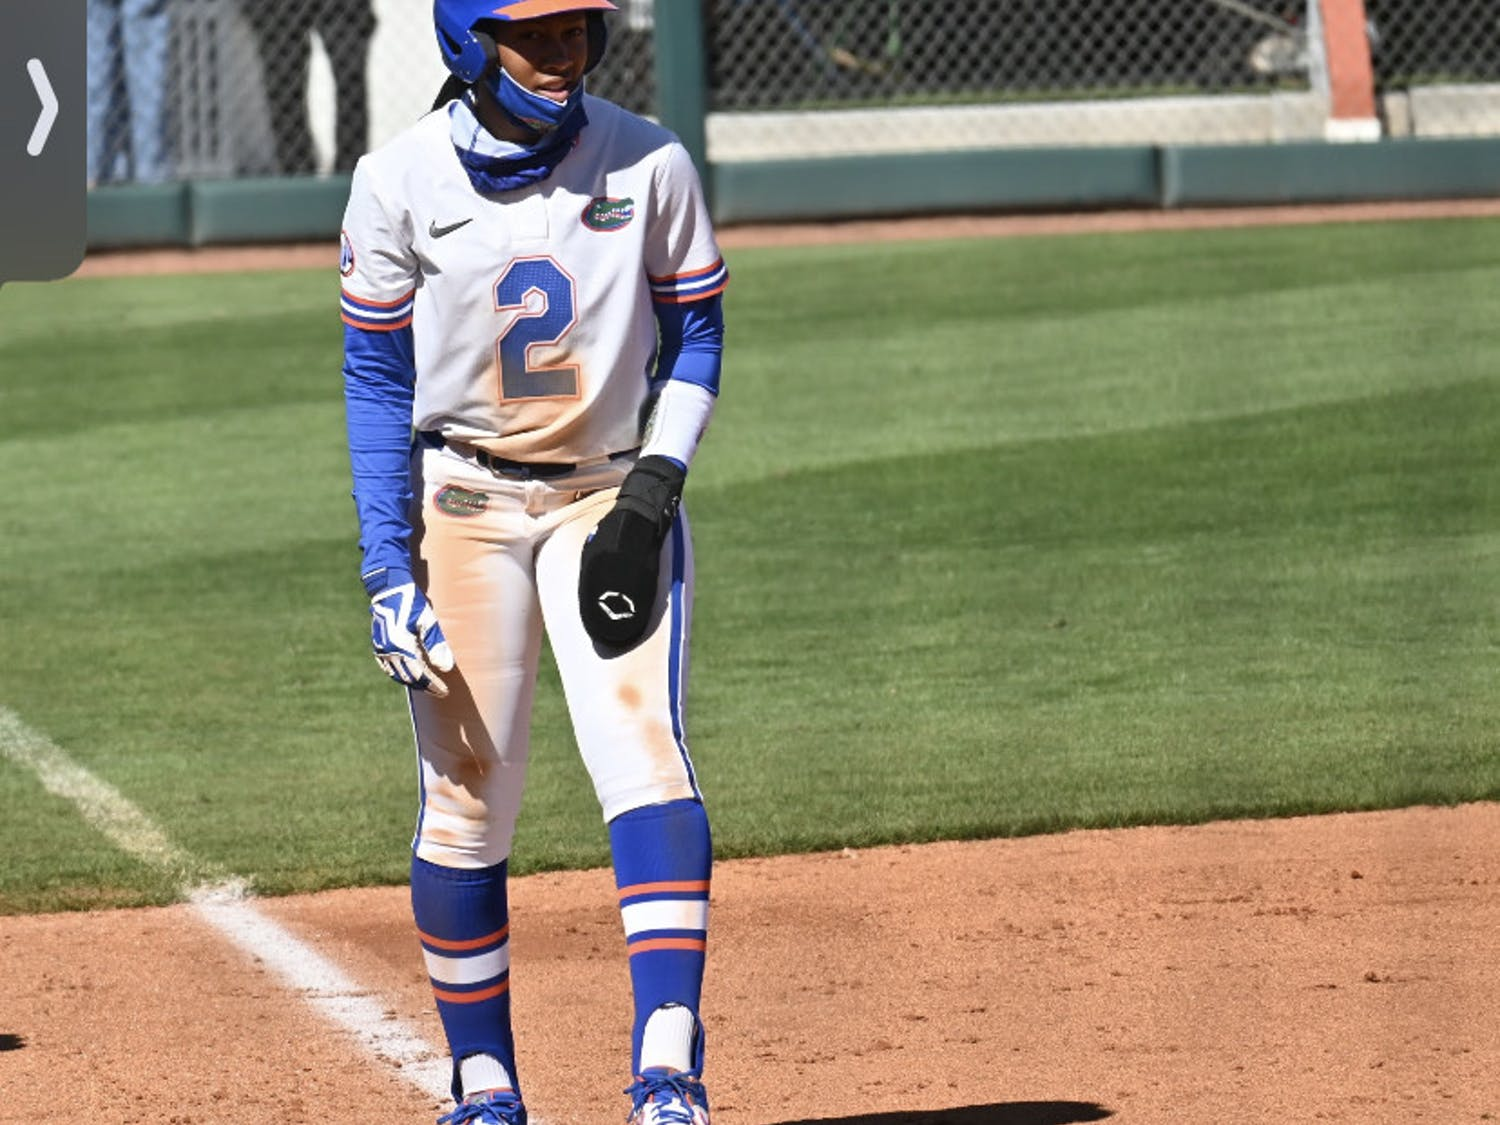 Cheyenne Lindsey salted the game away Saturday against with Louisville with a 2-RBI single down the right-field line.